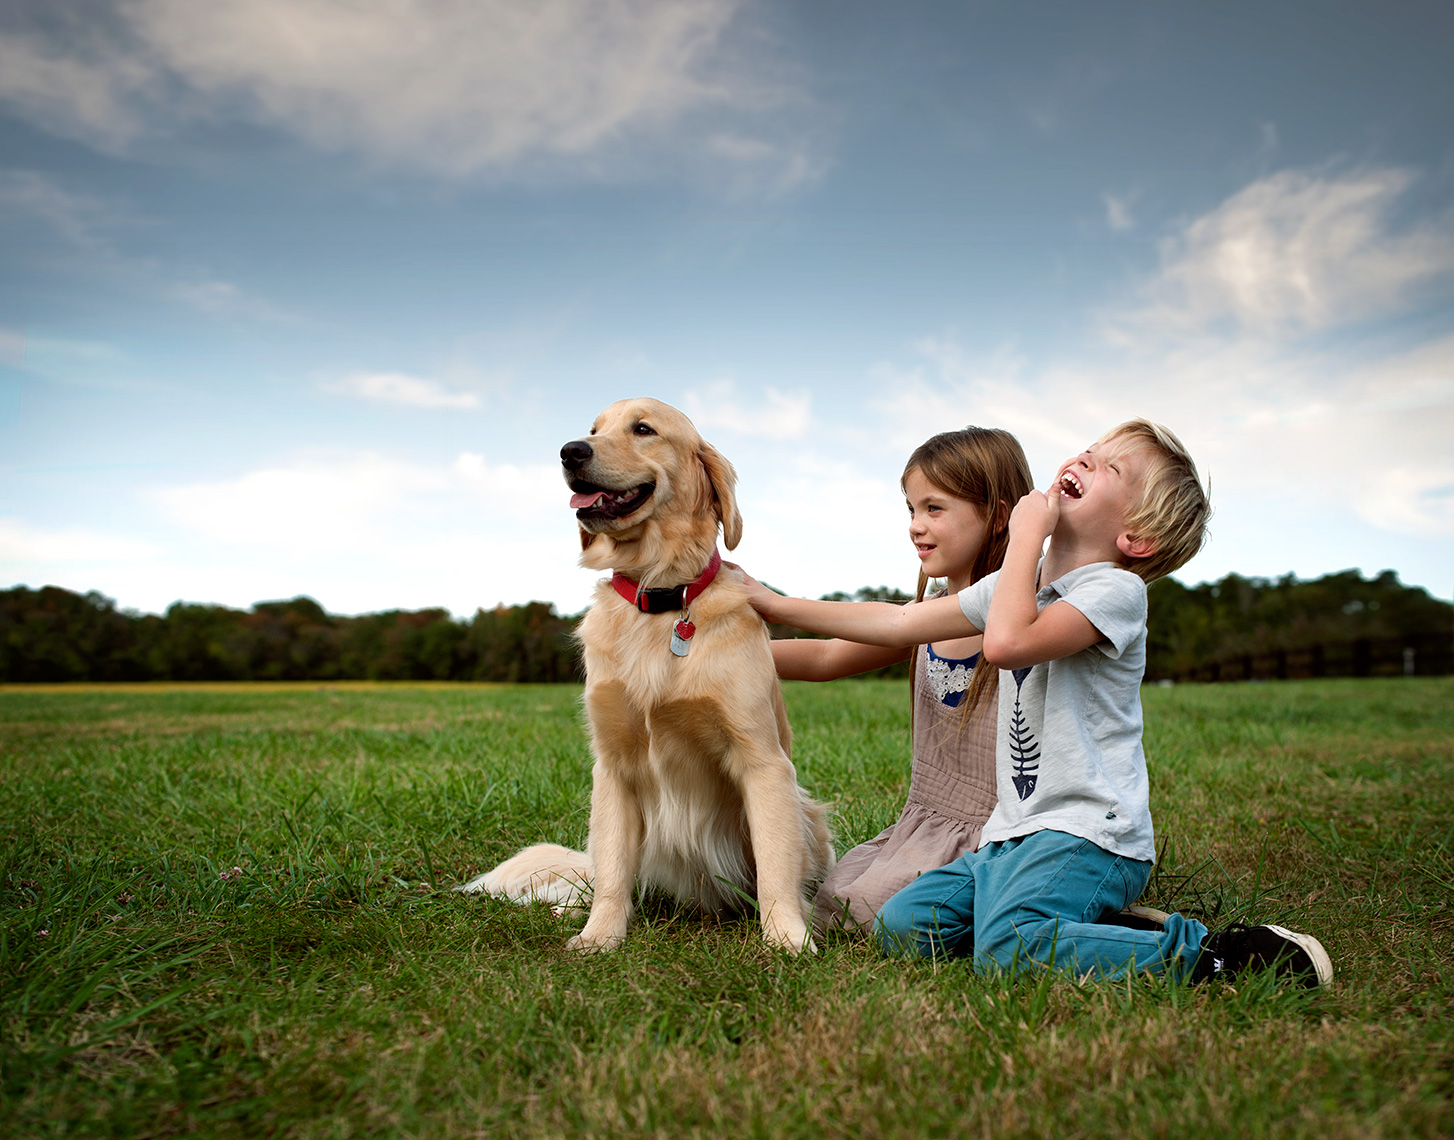 ©Robb Scharetg - kids and Golden Retriever , washington dc commercial photographer, washington dc commercial photography, washington dc lifestyle photographer, washington dc lifestyle photography